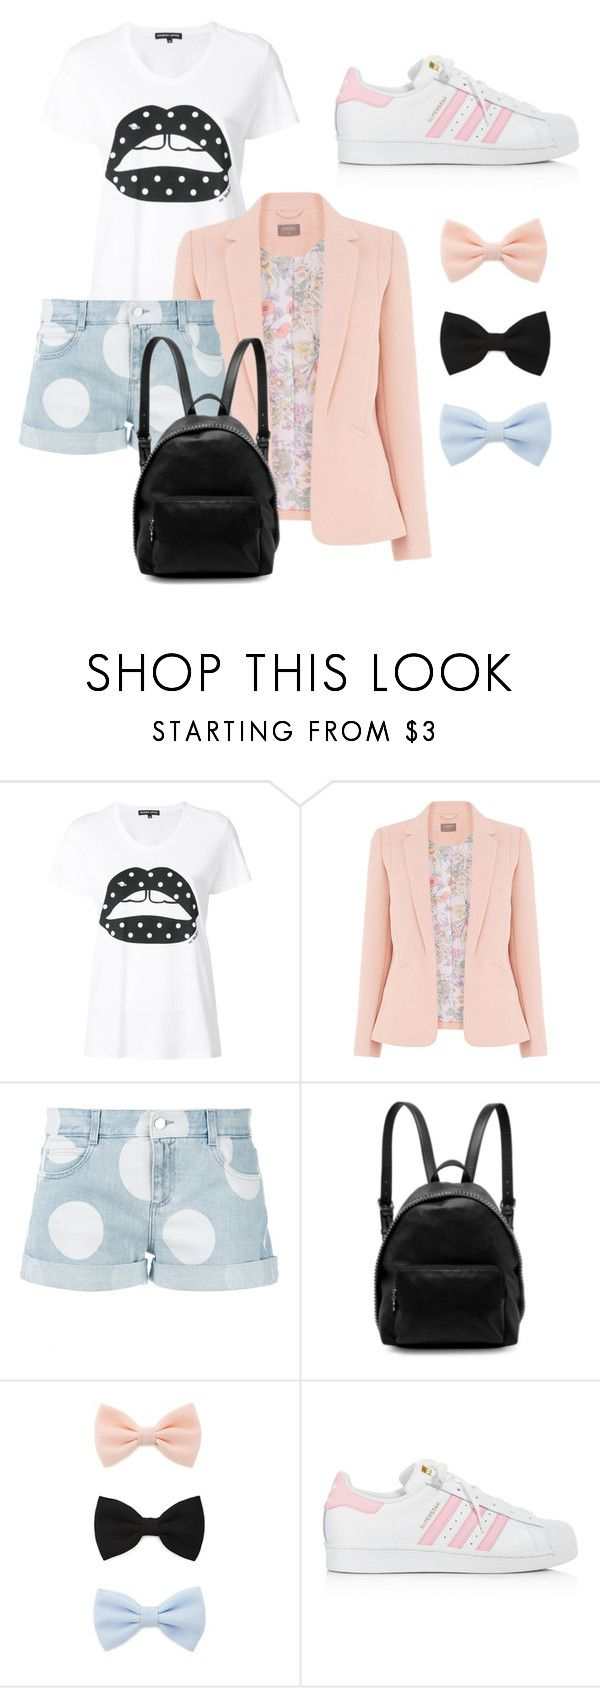 """Ploof"" by grahamzn on Polyvore featuring Markus Lupfer, STELLA McCARTNEY, Forever 21 and adidas"